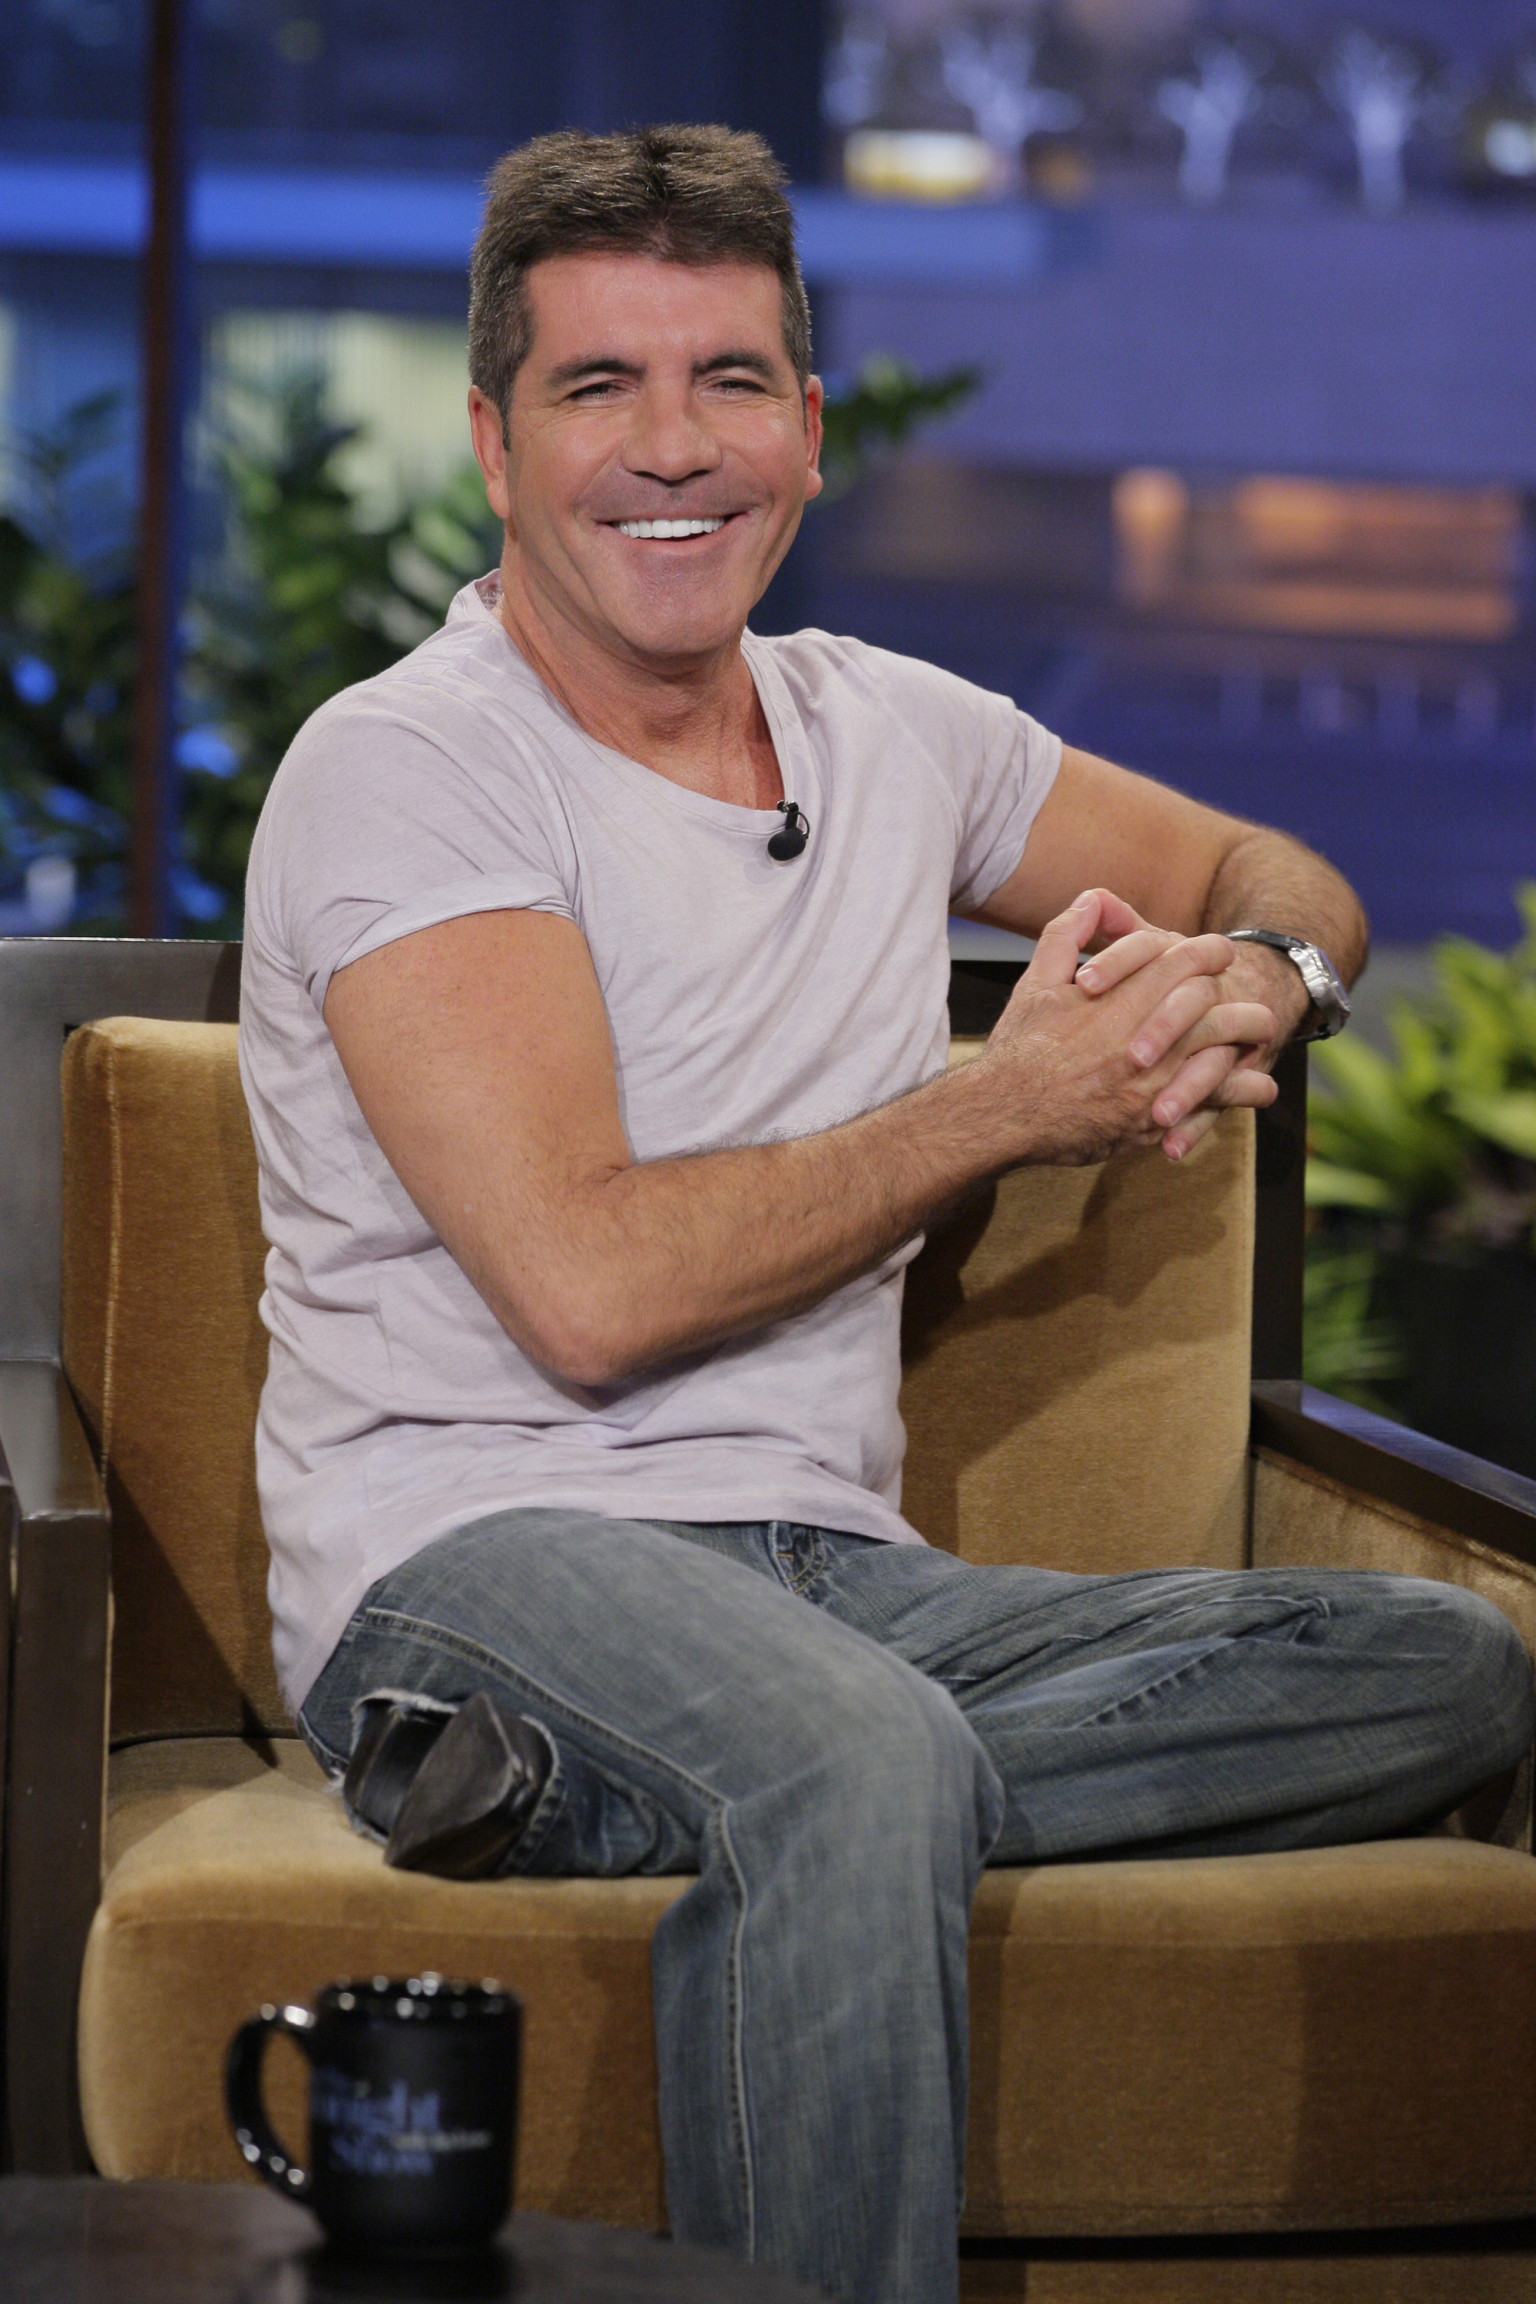 simon cowell biographysimon cowell net worth, simon cowell died, simon cowell son, simon cowell instagram, simon cowell young, simon cowell cry, simon cowell shrek 2, simon cowell 2017, simon cowell wiki, simon cowell news, simon cowell kimdir, simon cowell cars, simon cowell child, simon cowell imdb, simon cowell dead, simon cowell songs, simon cowell natal chart, simon cowell and demi lovato, simon cowell tumblr, simon cowell biography